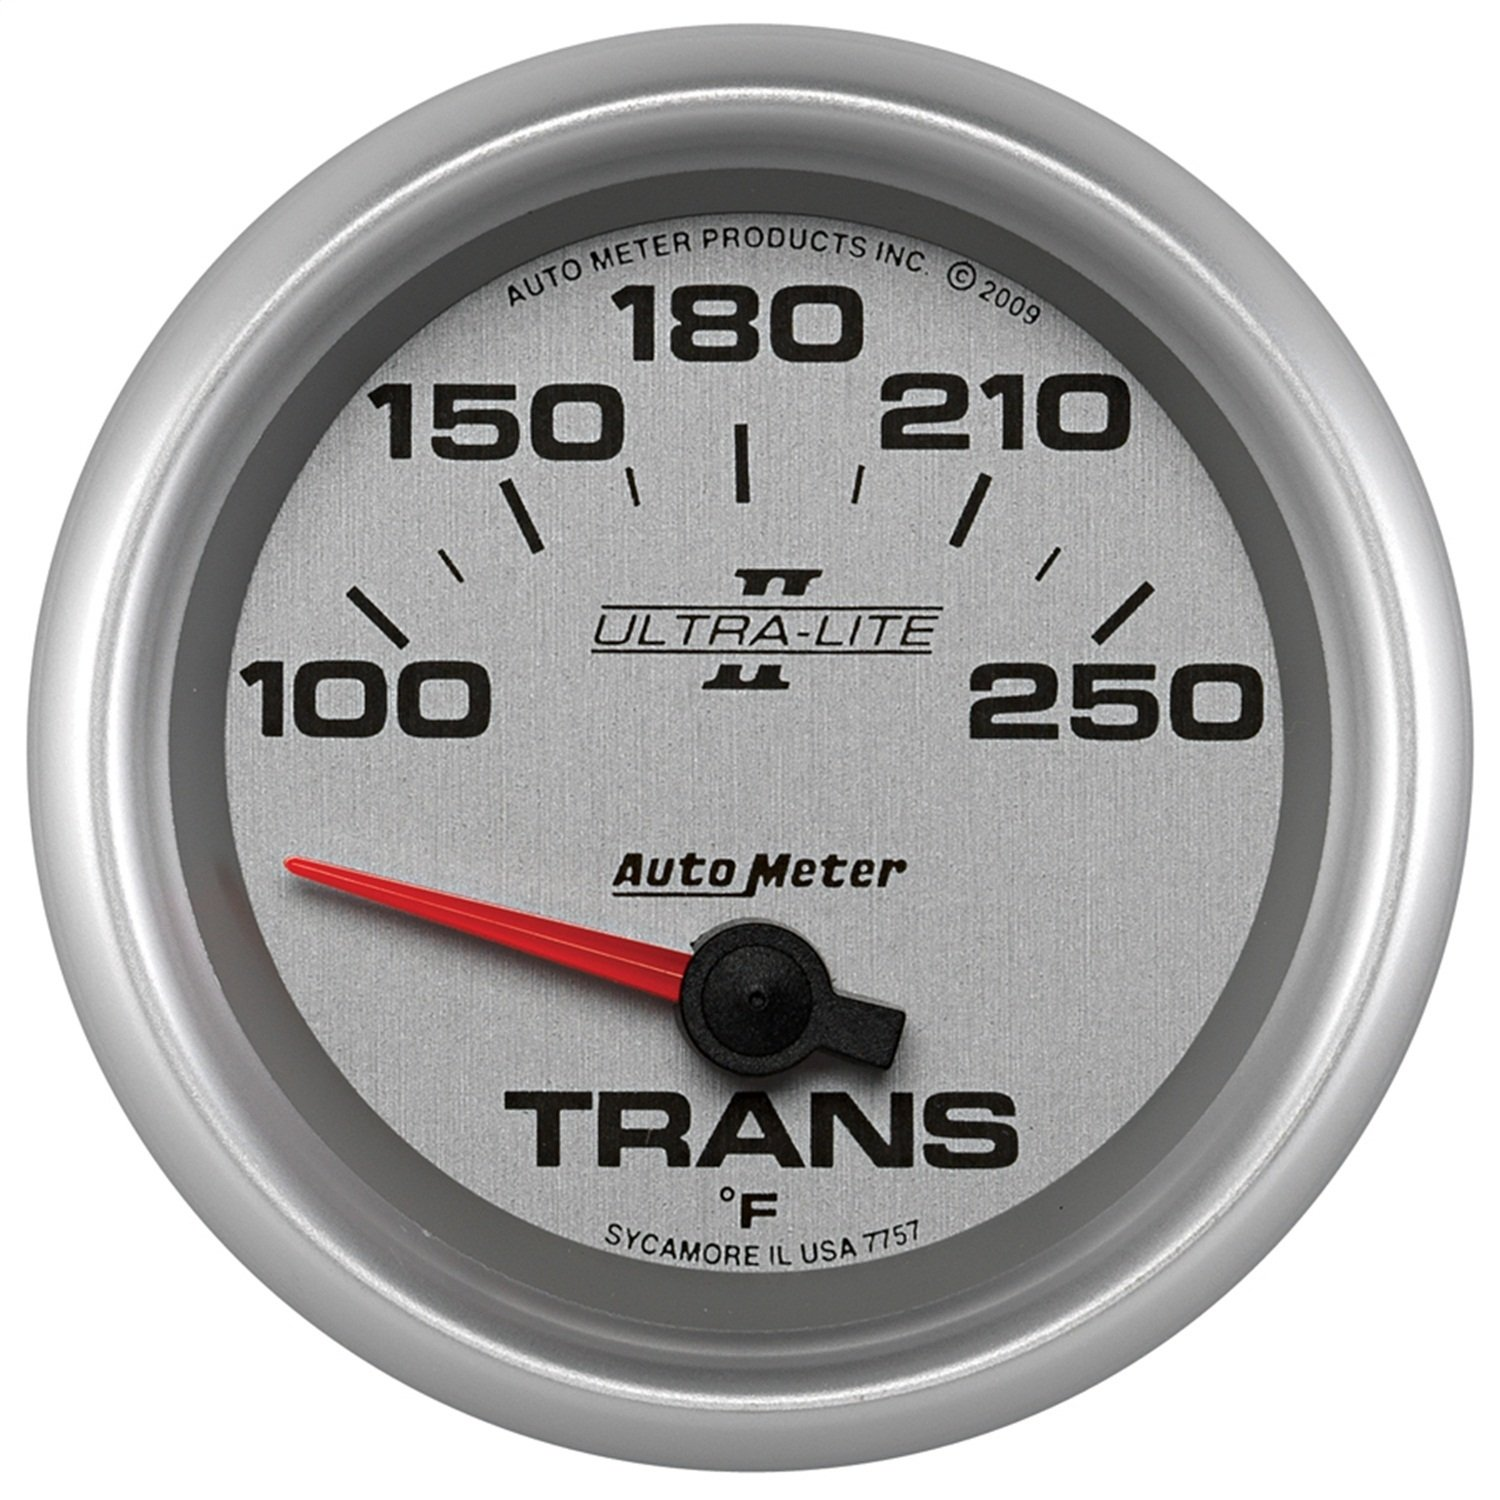 Auto Meter 7757 Ultra-Lite Pro II 2-5/8'' 100-250 F Short Sweep Electric Transmission Temperature Gauge by Auto Meter